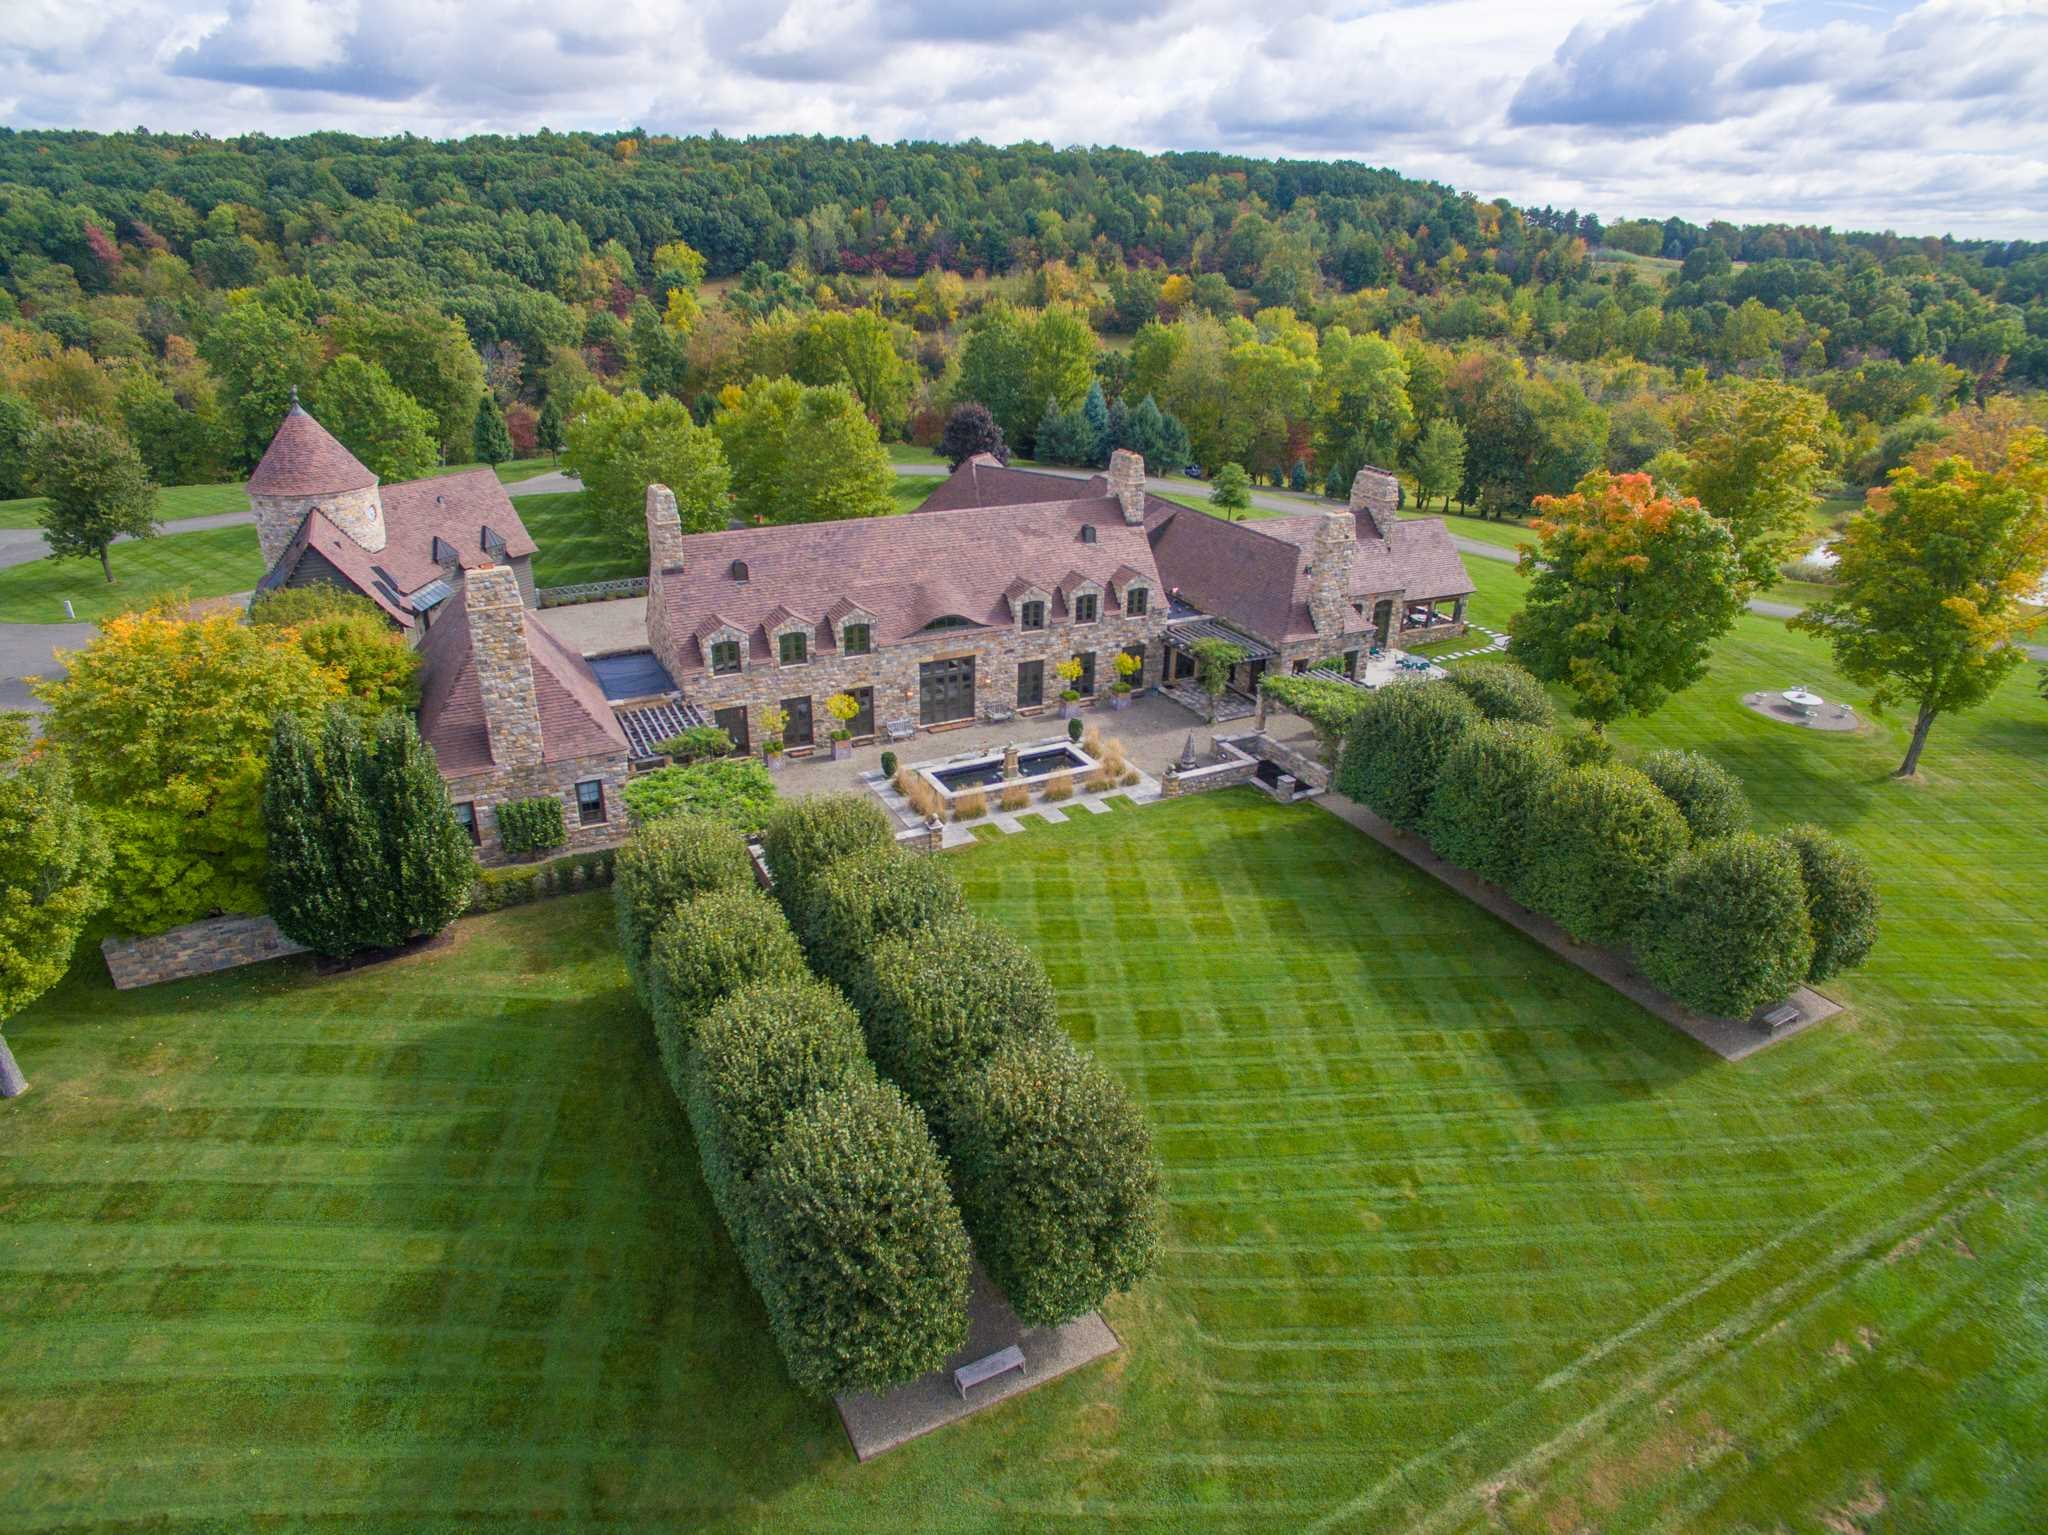 Single Family Home for Sale at 460 KINNEY Road 460 KINNEY Road Kinderhook, New York 12106 United States